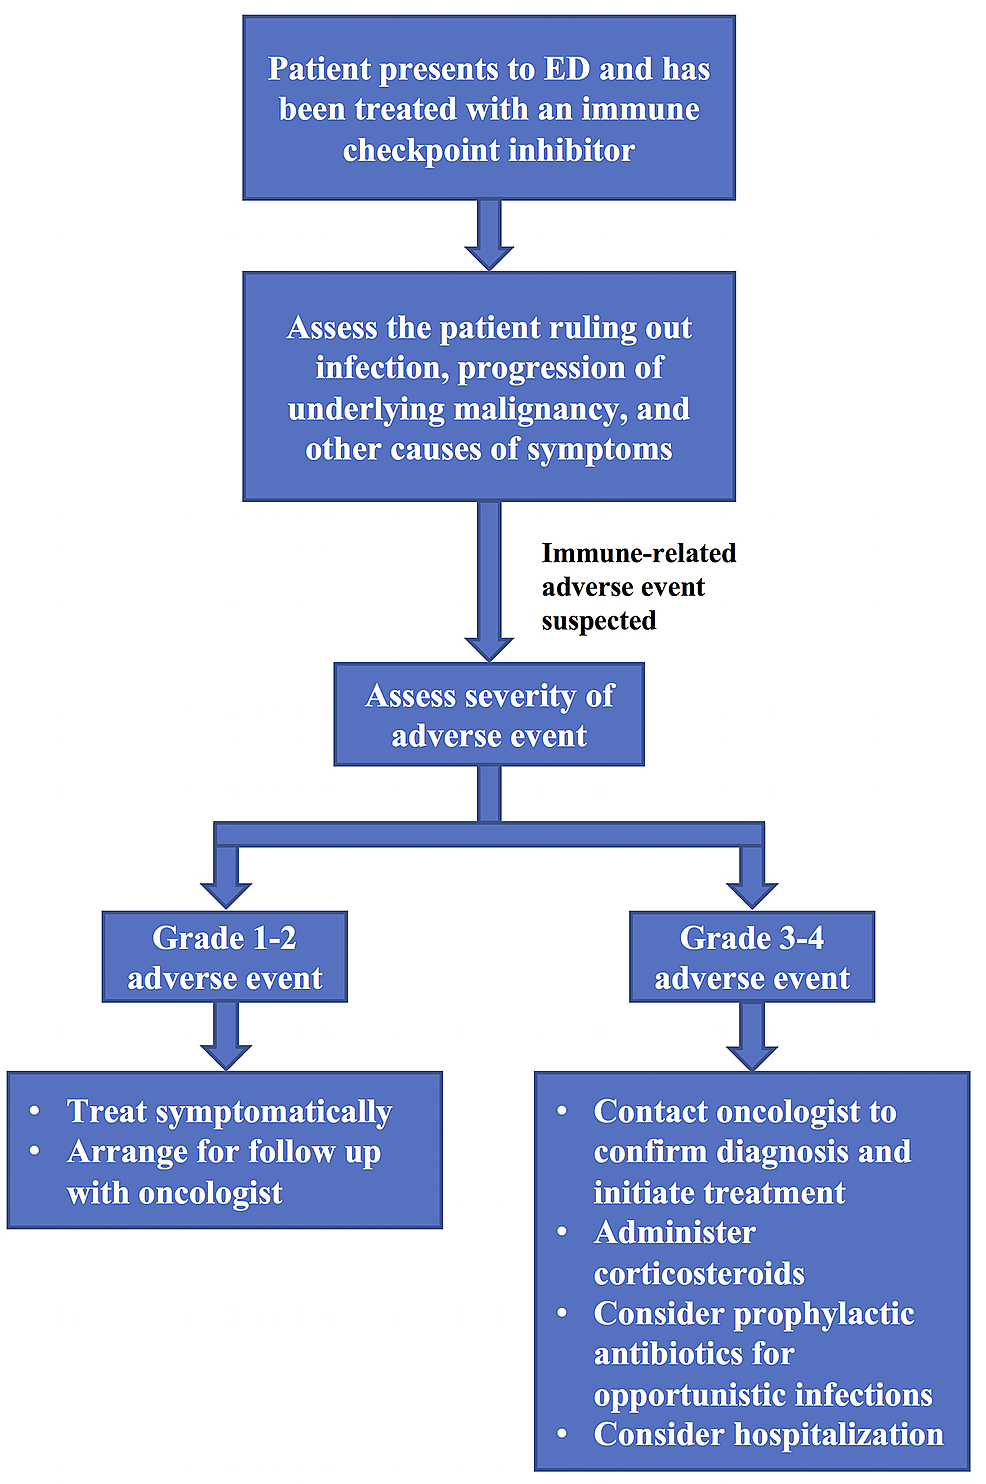 Emergency-department-management-of-a-patient-on-an-immune-checkpoint-inhibitor